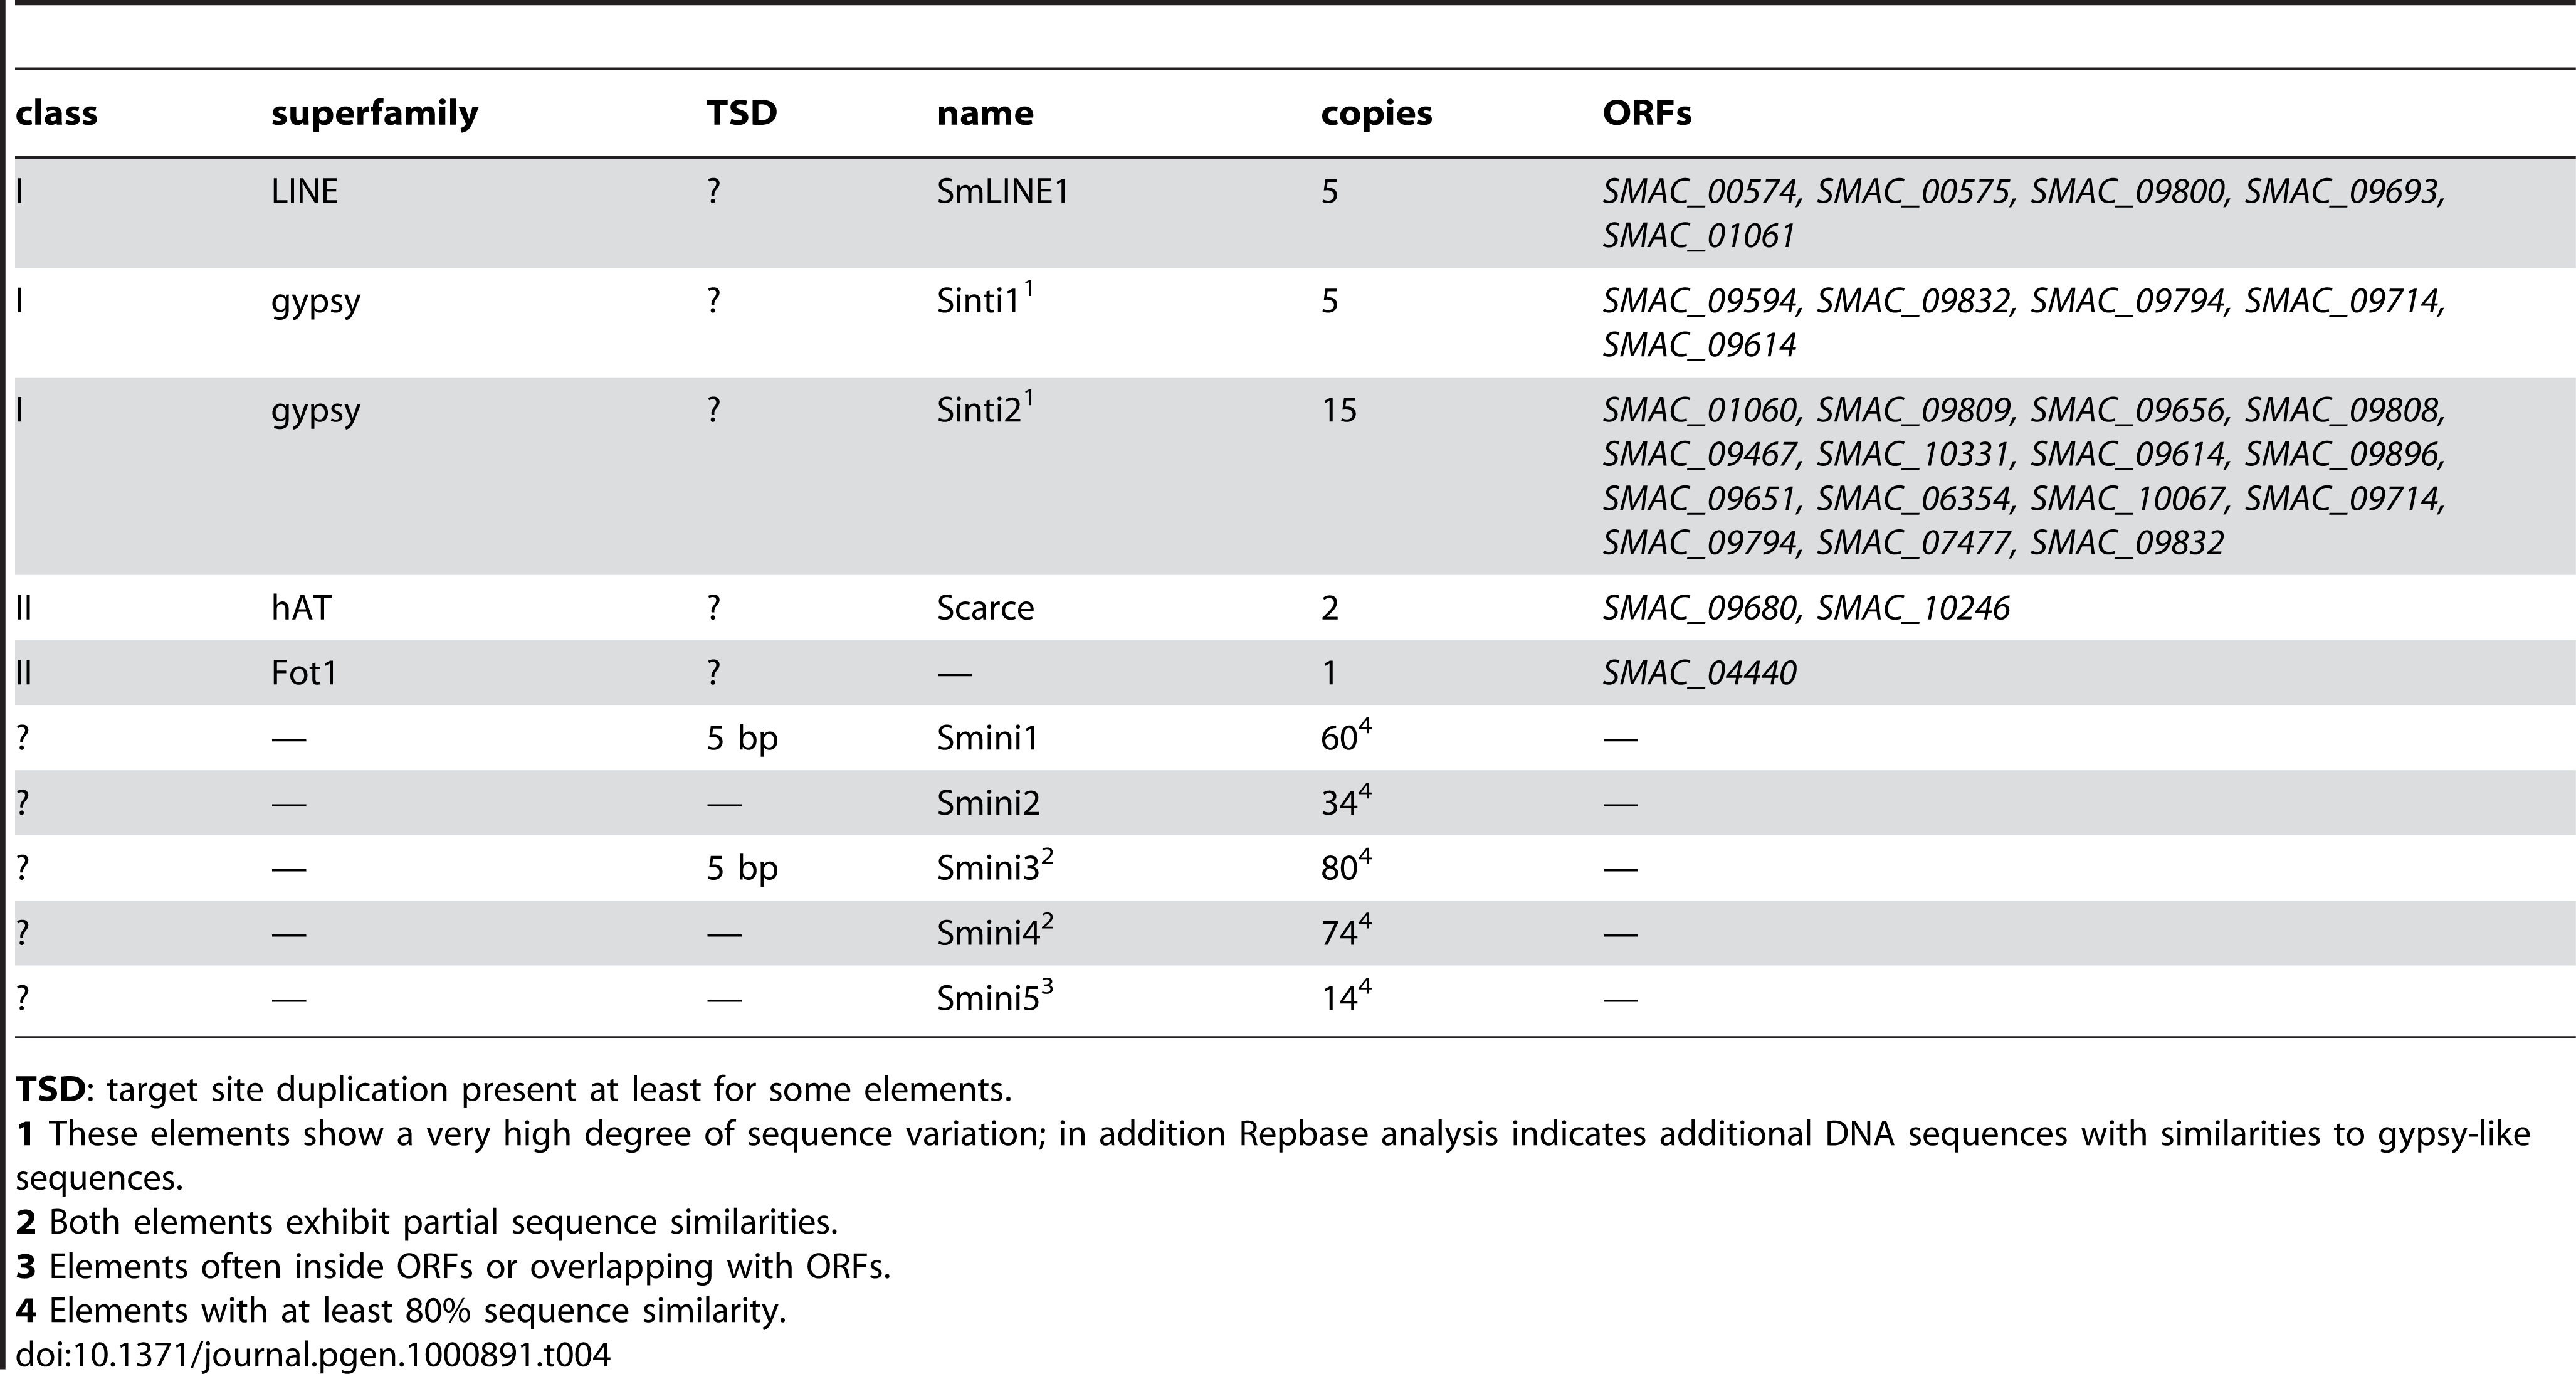 Repeated sequences and transposons in the <i>S. macrospora</i> genome.